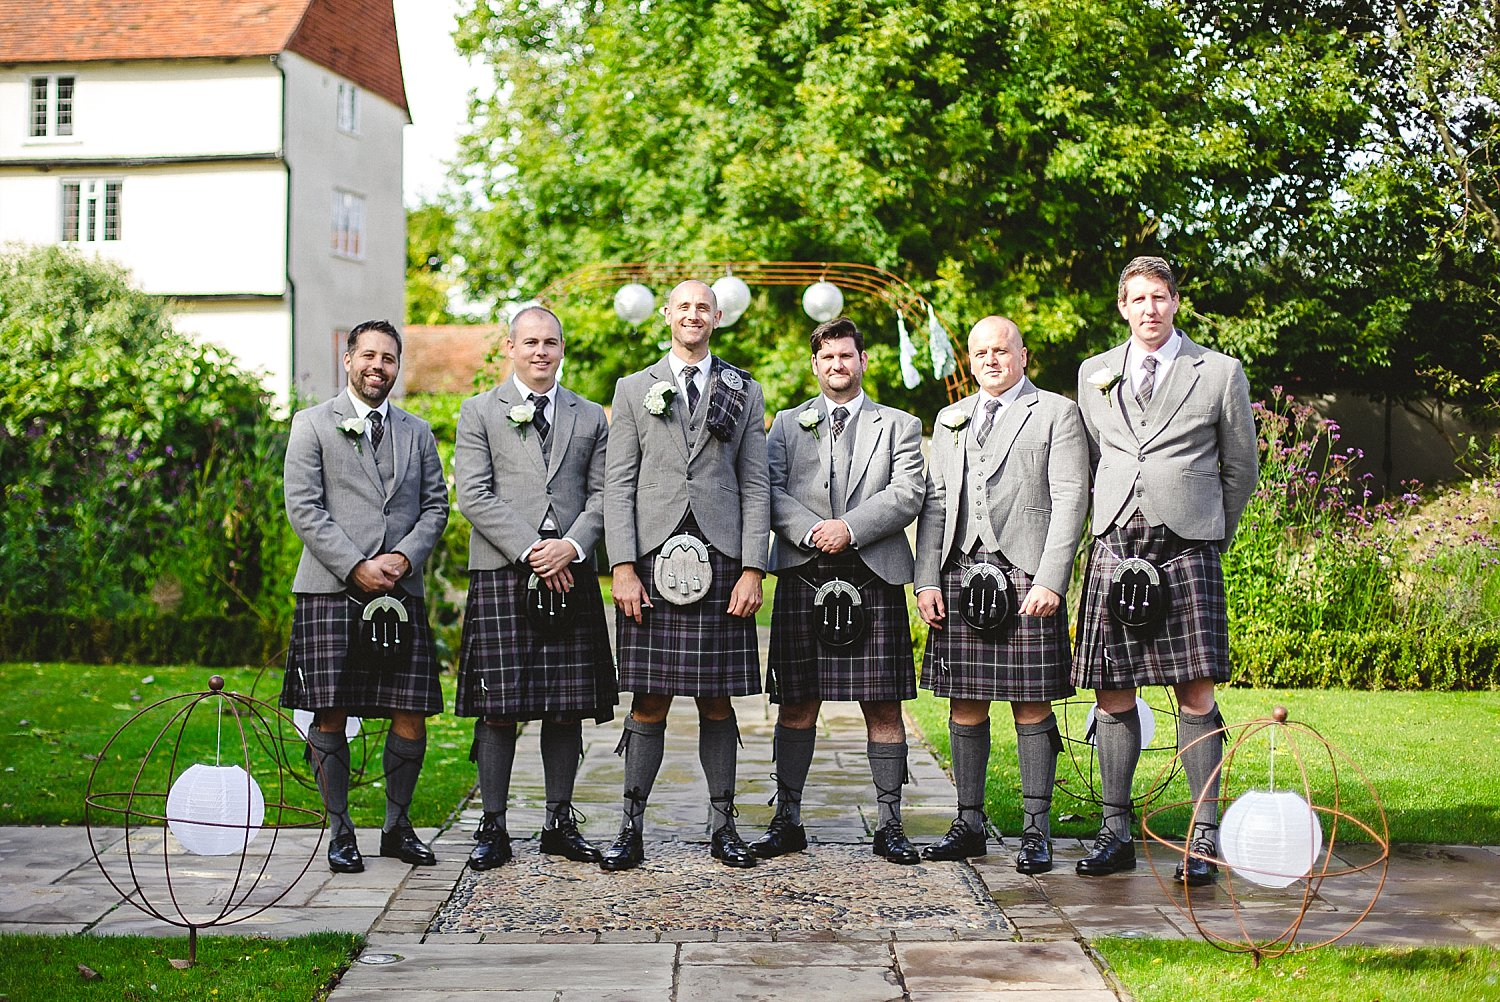 Houchins Wedding Photographer - Grooms Party in Kilts in the Gardens